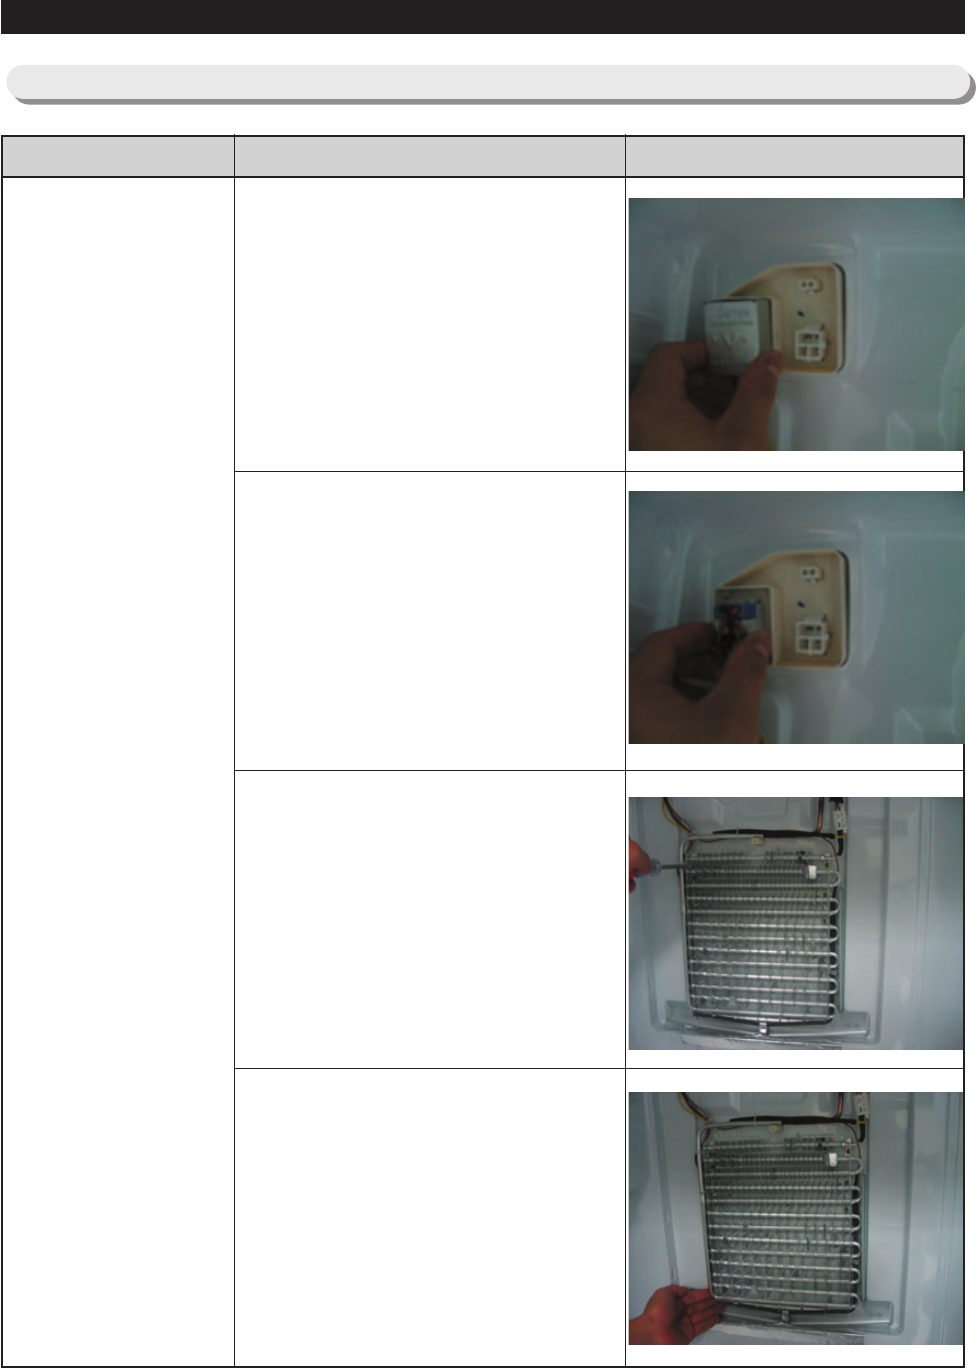 samsung refrigerator user manual pdf